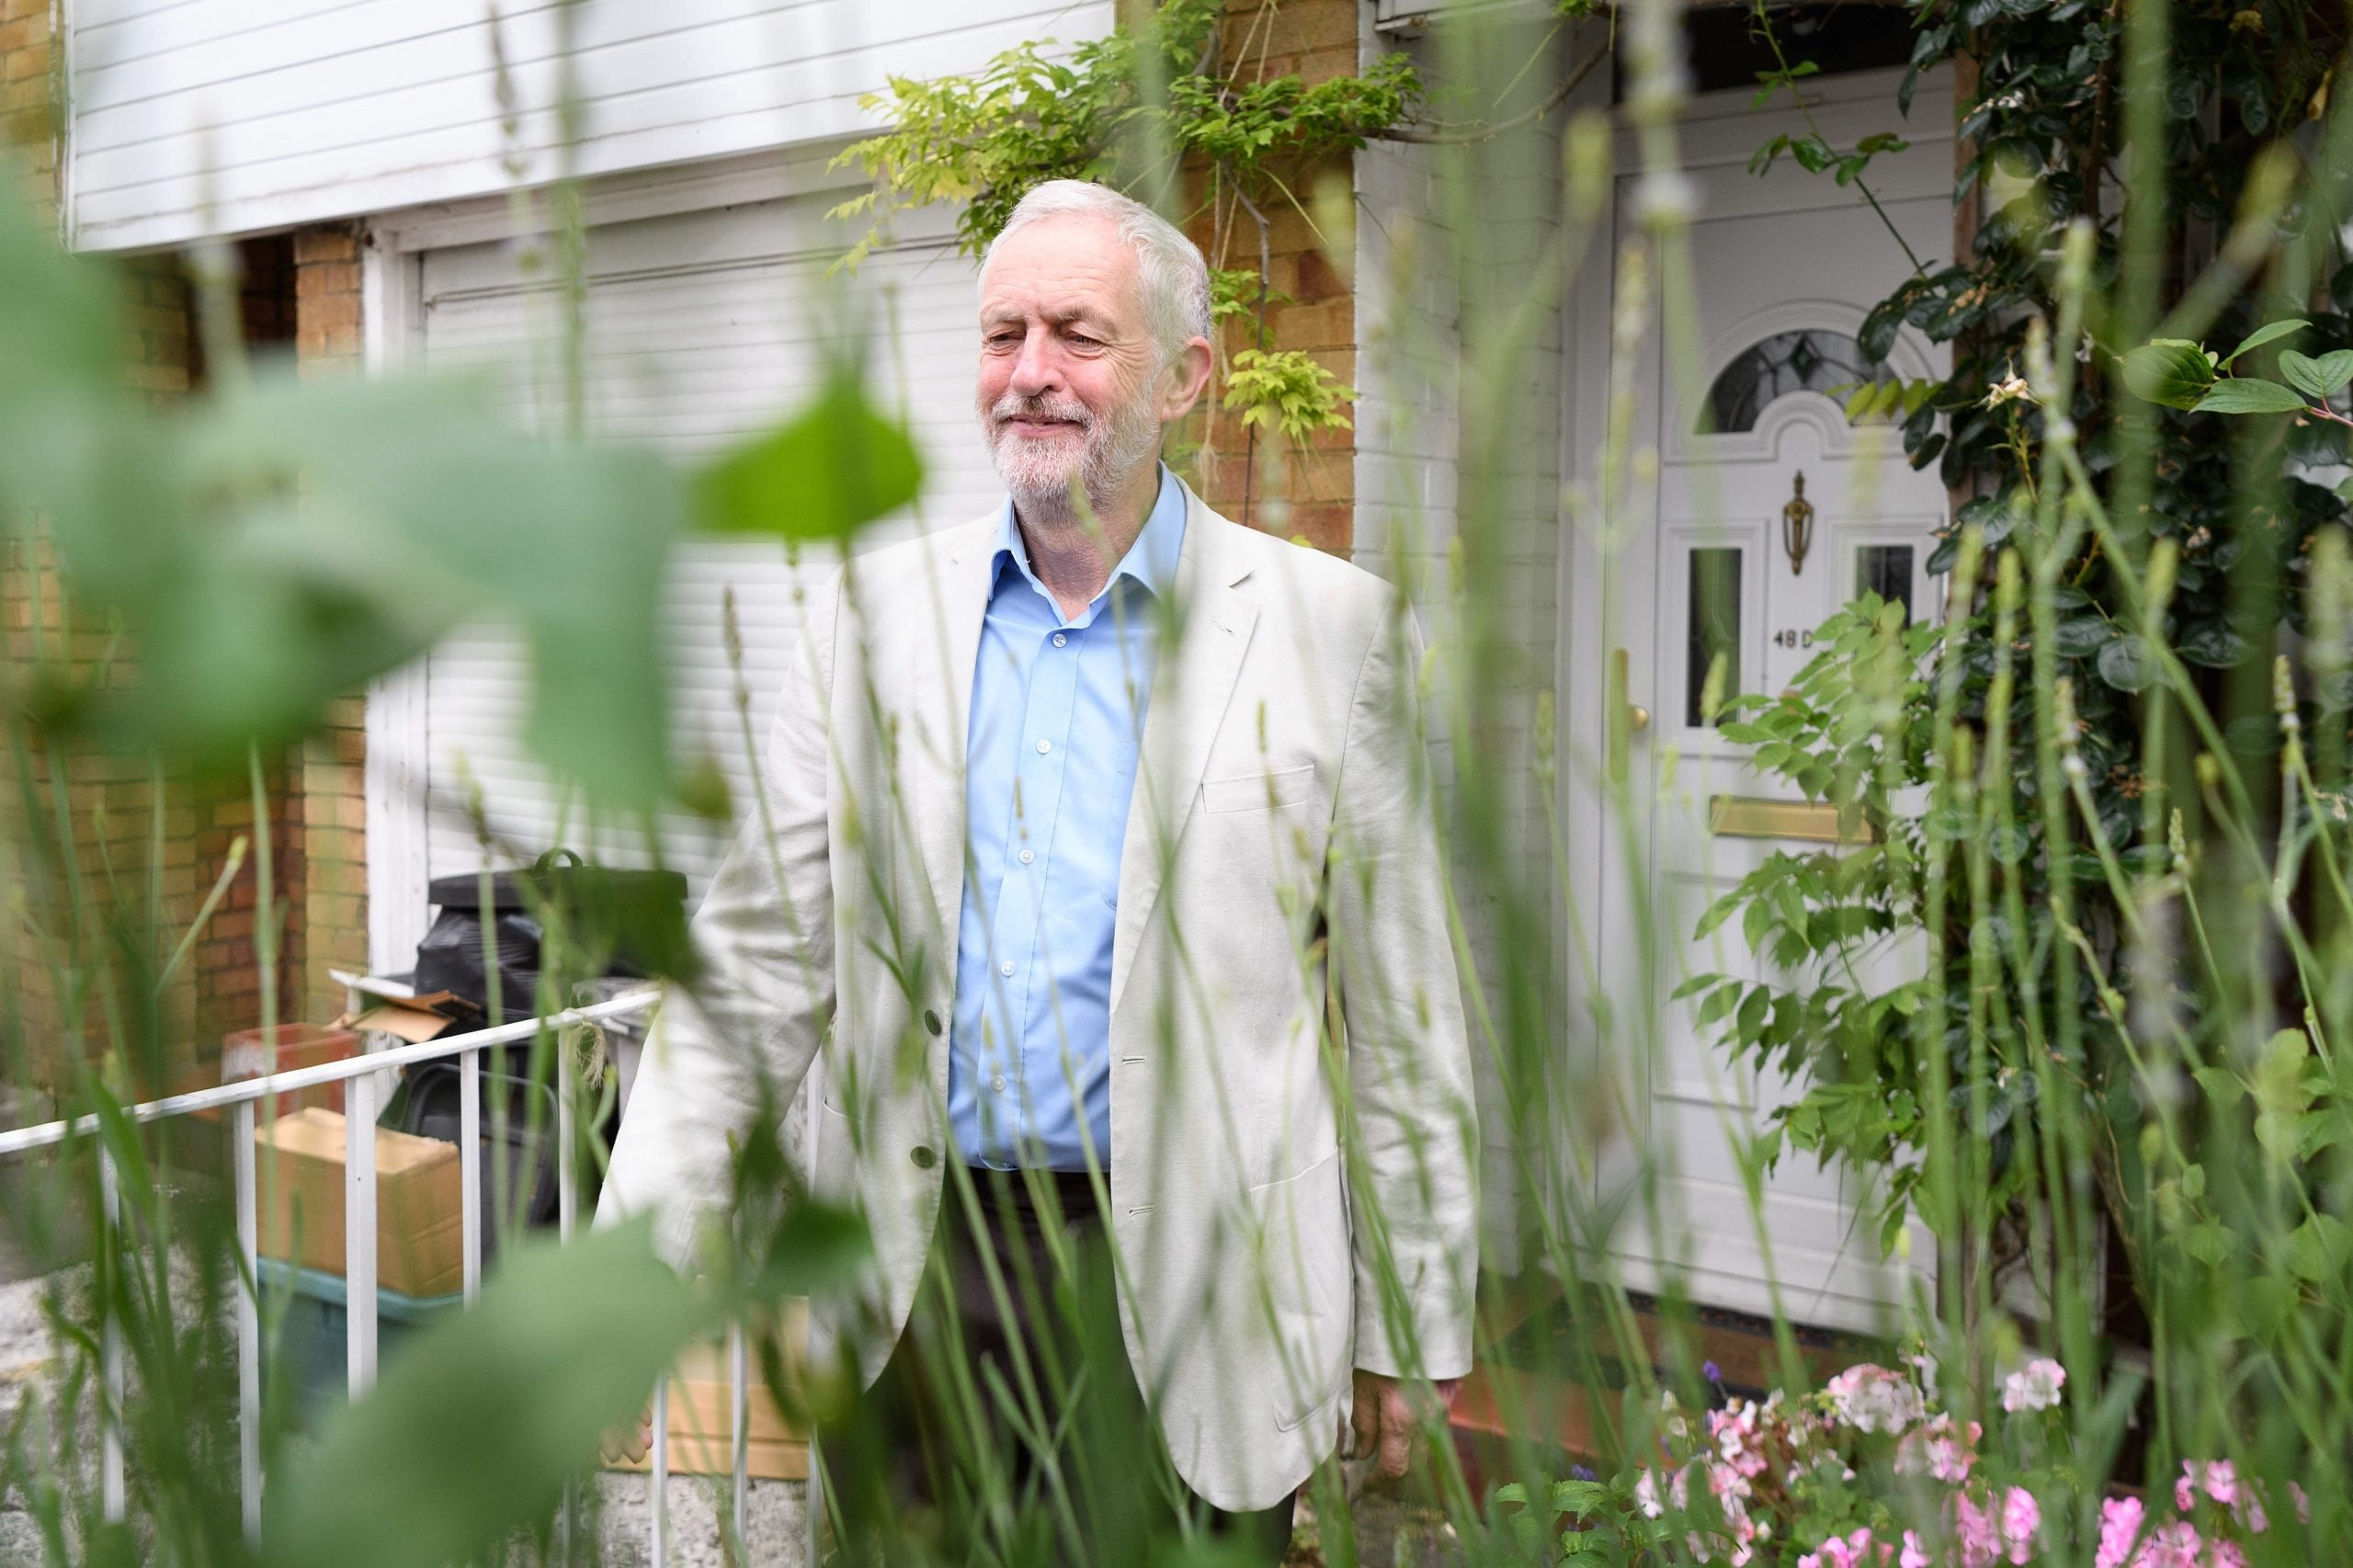 Like Rocky Balboa, Jeremy Corbyn might not have won – but he sure went the distance